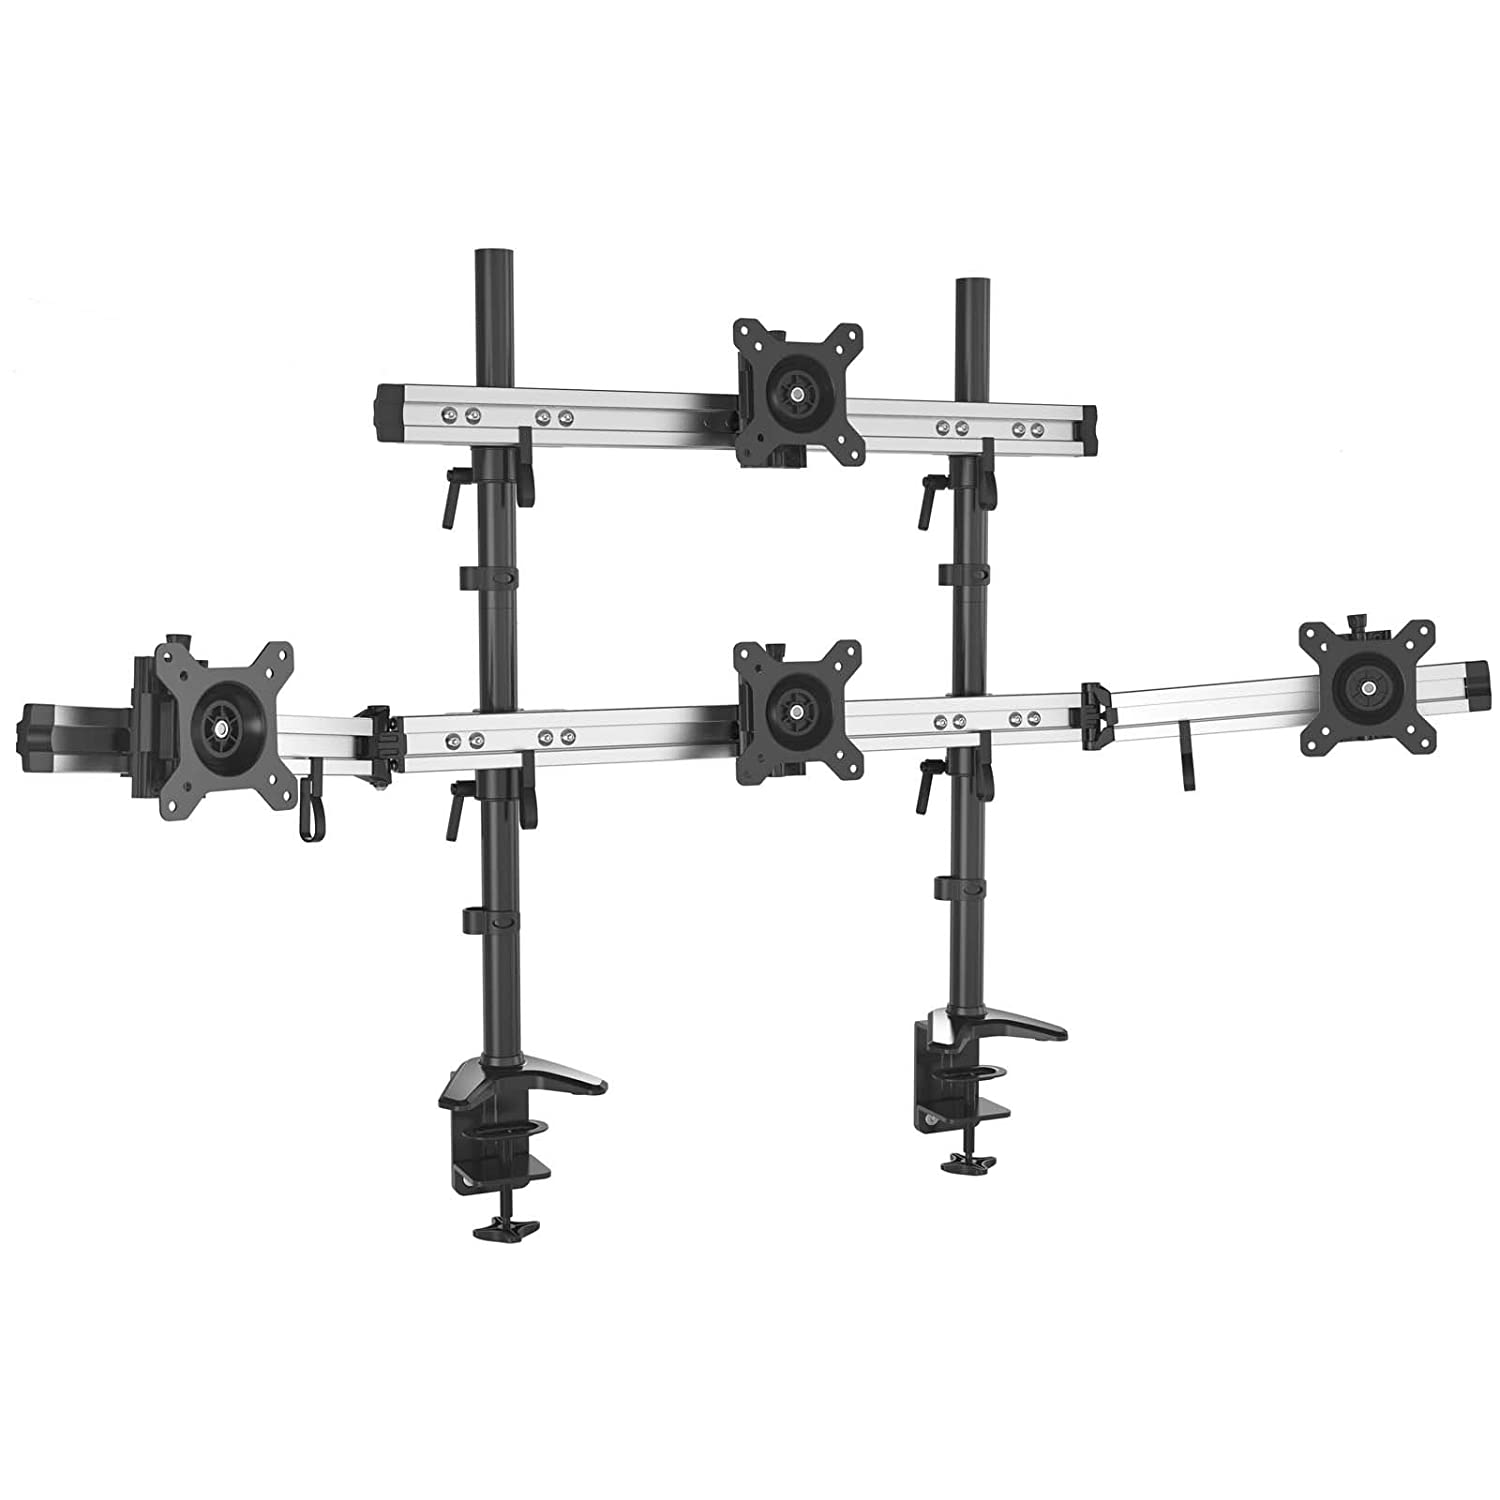 HFTEK Triple 3 Monitor desk mount stand holder bracket control center for screen monitor 15 to 27 inches with VESA 75/100 (MP230C-L)